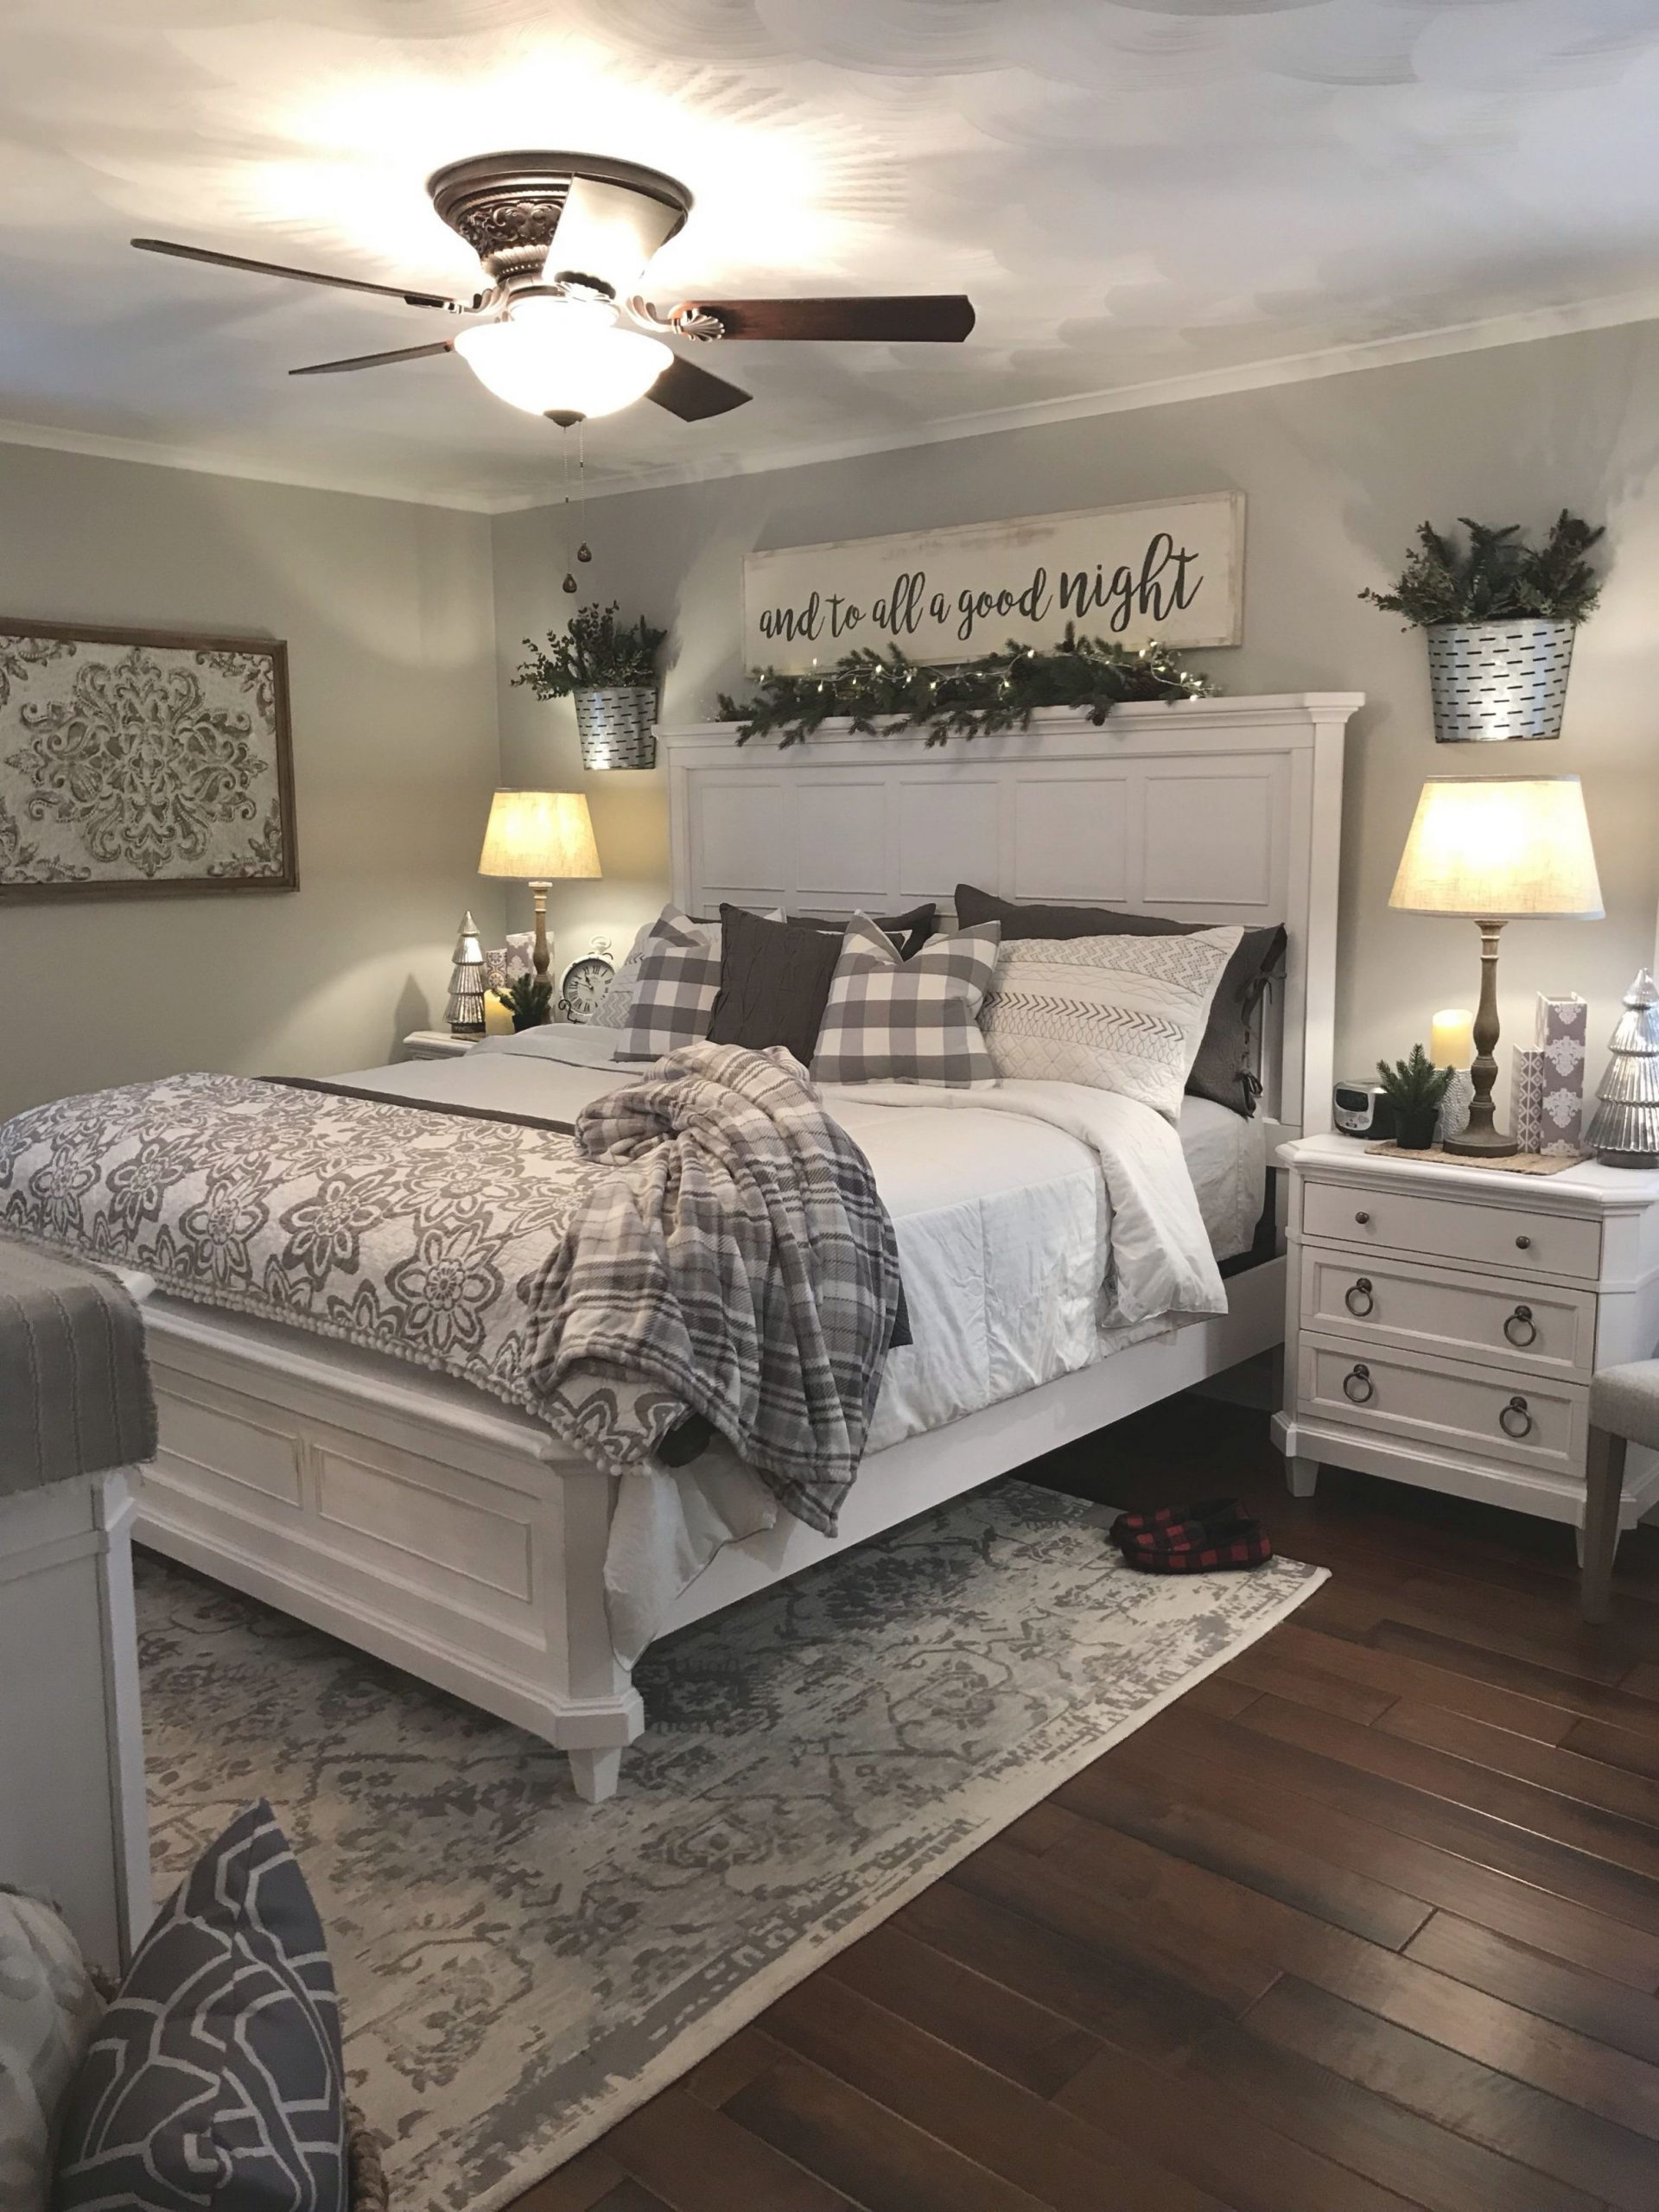 Pinbwarren On Home Rustic Master Bedroom Farmhouse Throughout Home Decor Ideas For Master Bedroom Awesome Decors